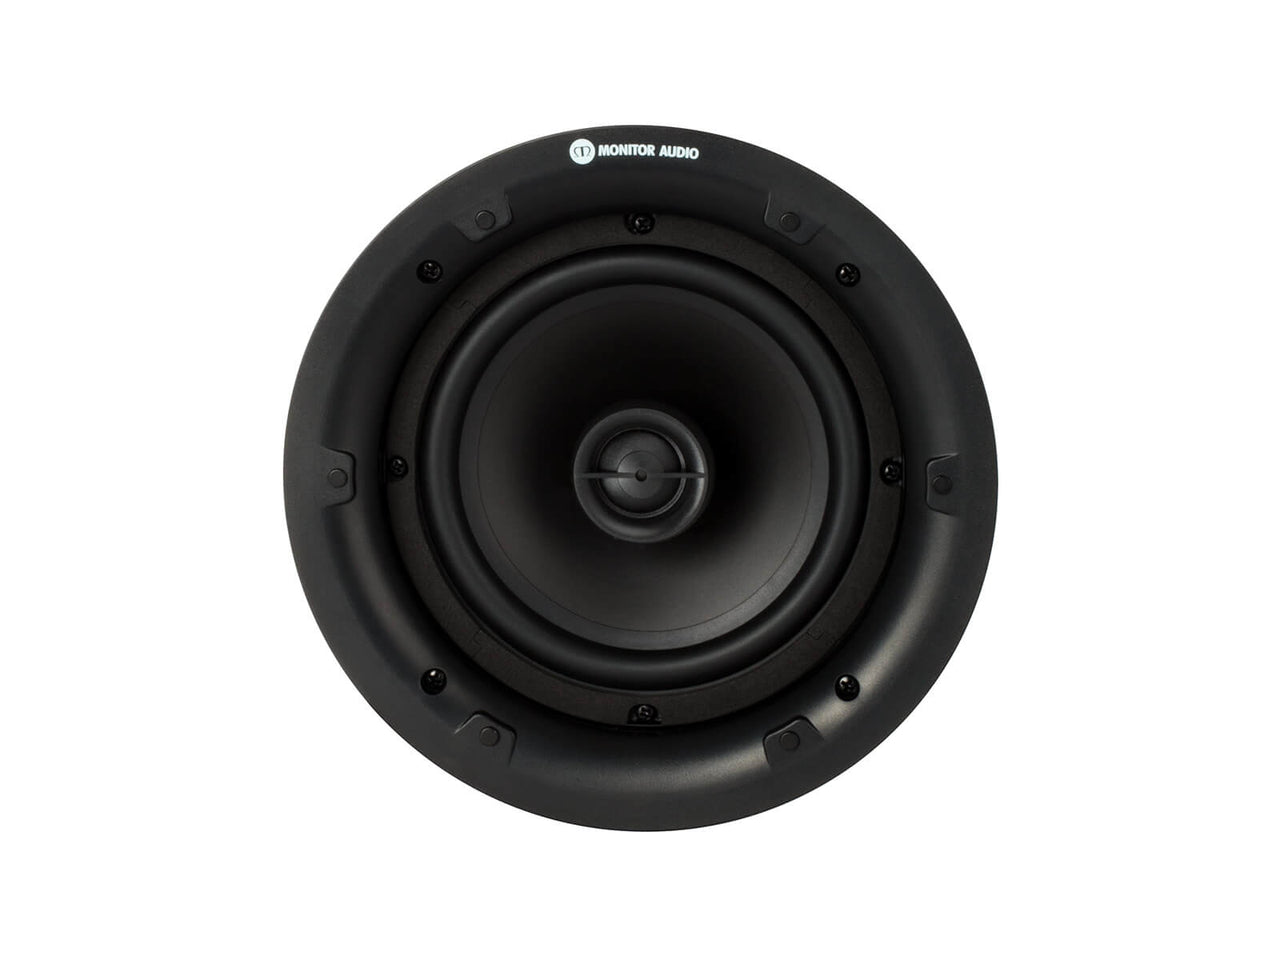 Monitor Audio Pro Series In-Ceiling Speakers